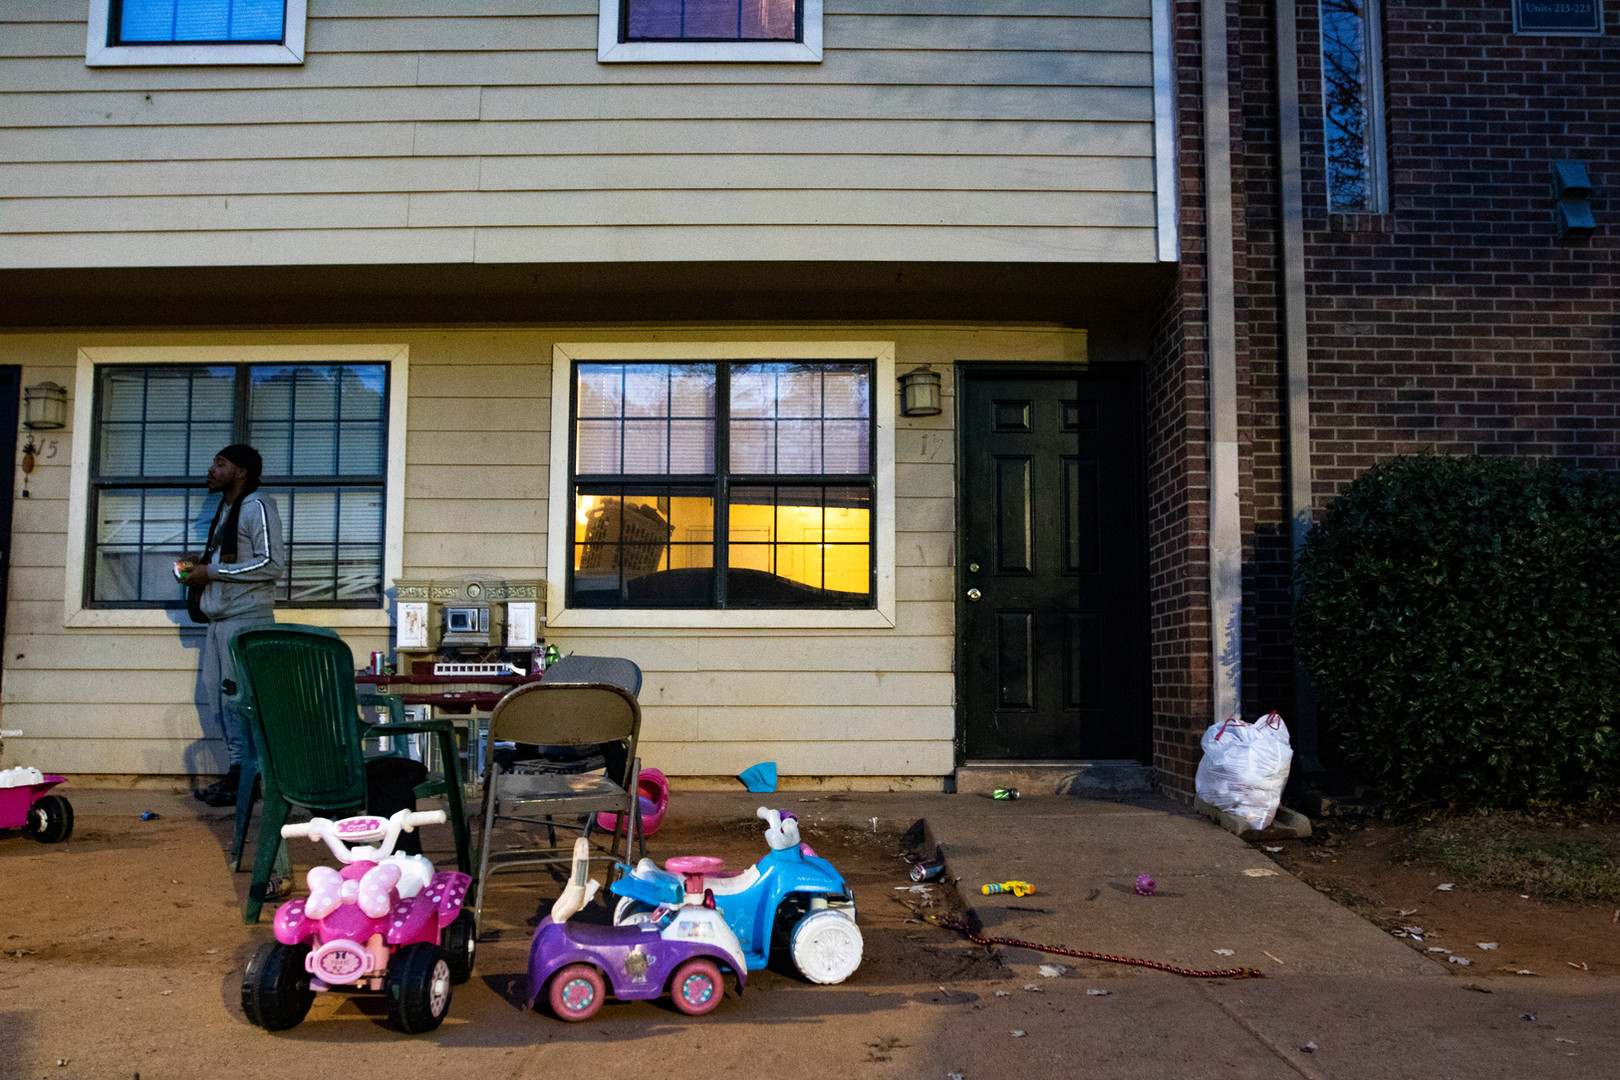 Childrens' toys are abandoned for the night outside of Renata Hailey's home in Athens, Georgia on Thursday, Nov. 21, 2019. Hailey lives with her five children in a subsidized apartment complex where unresolved maintence issues have created unsafe living conditions for her family. Due to untreated mold in the carpets, walls, and floors, all of her children require breathing treatments. Exposed wires in her dishwasher pose an electrical safety threat to the infants in her home and render the dishwasher unusable. Frequent fights and violence in the neighborhood prevent her from allowing her children to play far from the front door. Hailey says she feels like she is living in the projects, not a subsidized townhome.